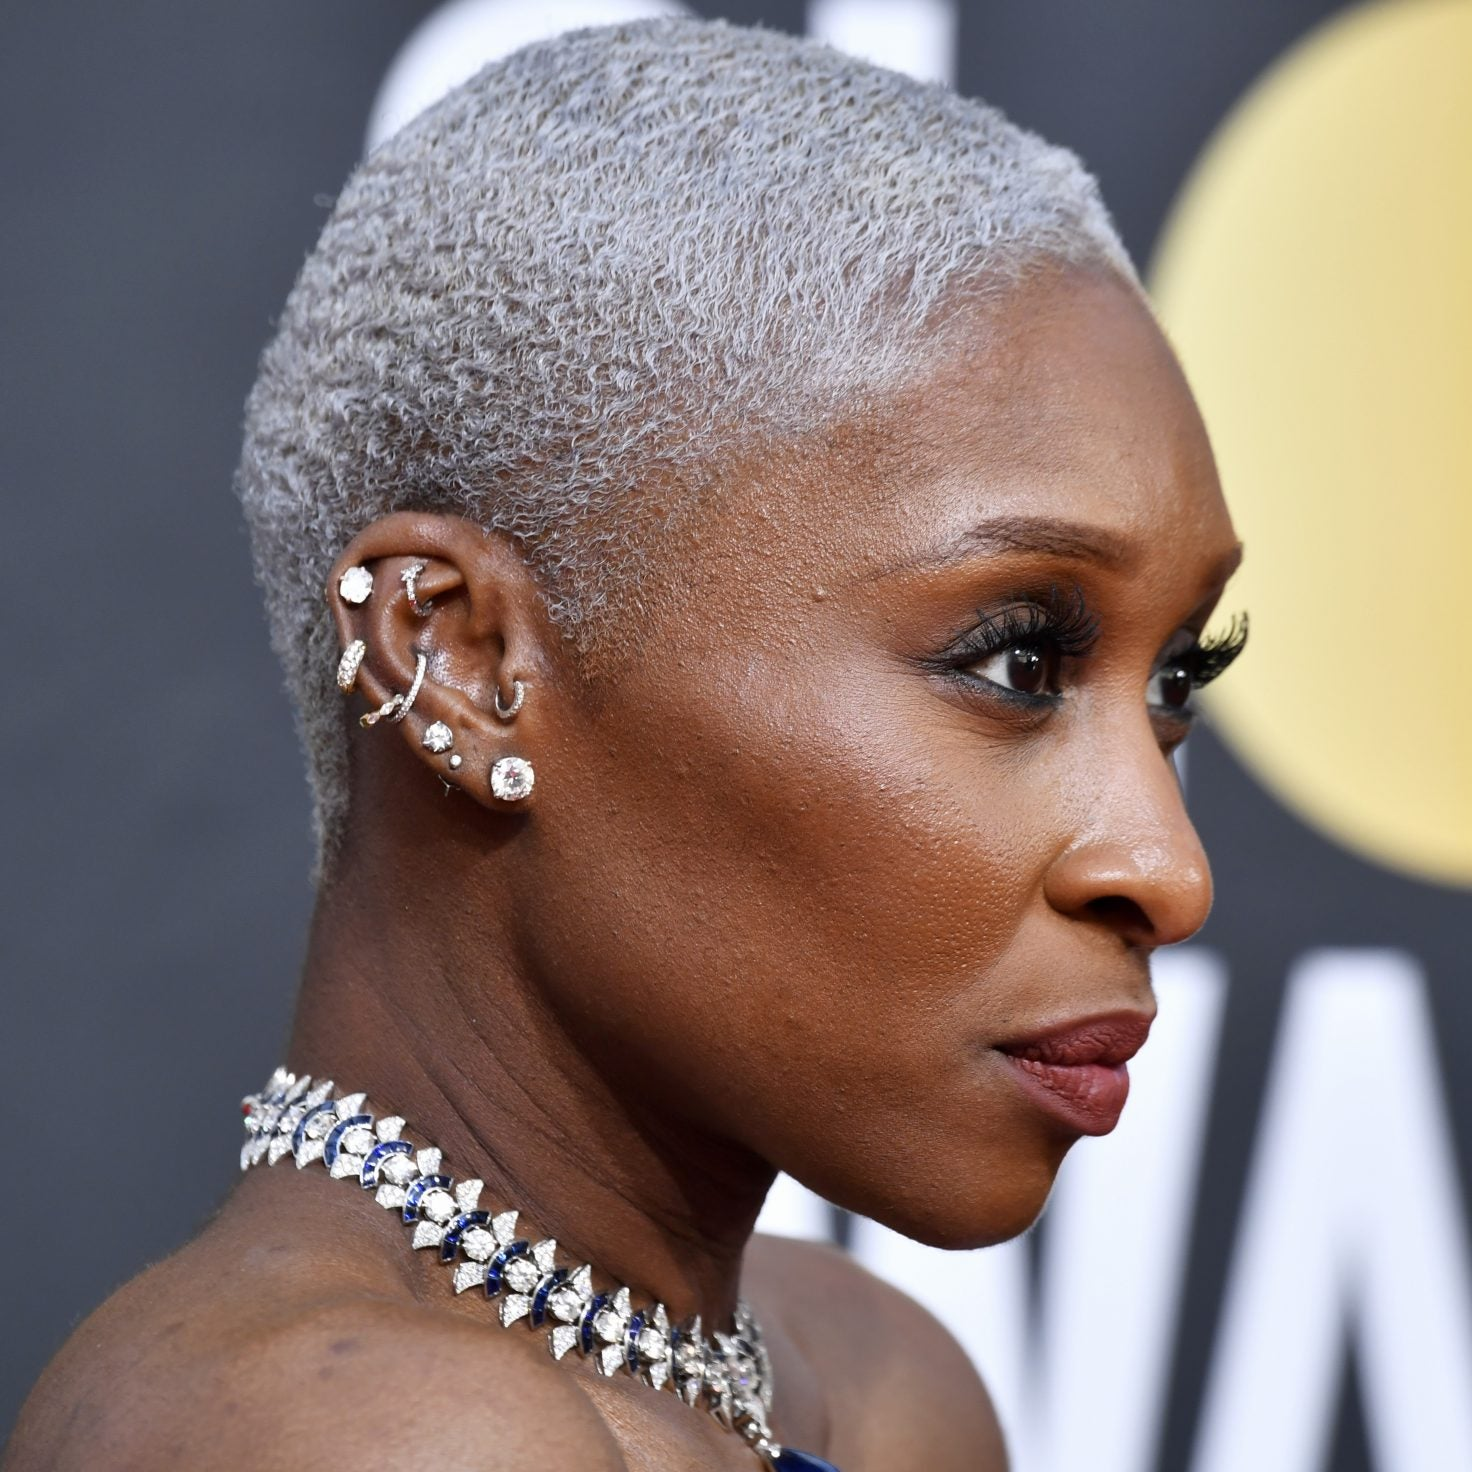 Cynthia Erivo Is 'Disappointed' By All-White BAFTA Nominations, Confirms She Turned Down Opportunity To Perform